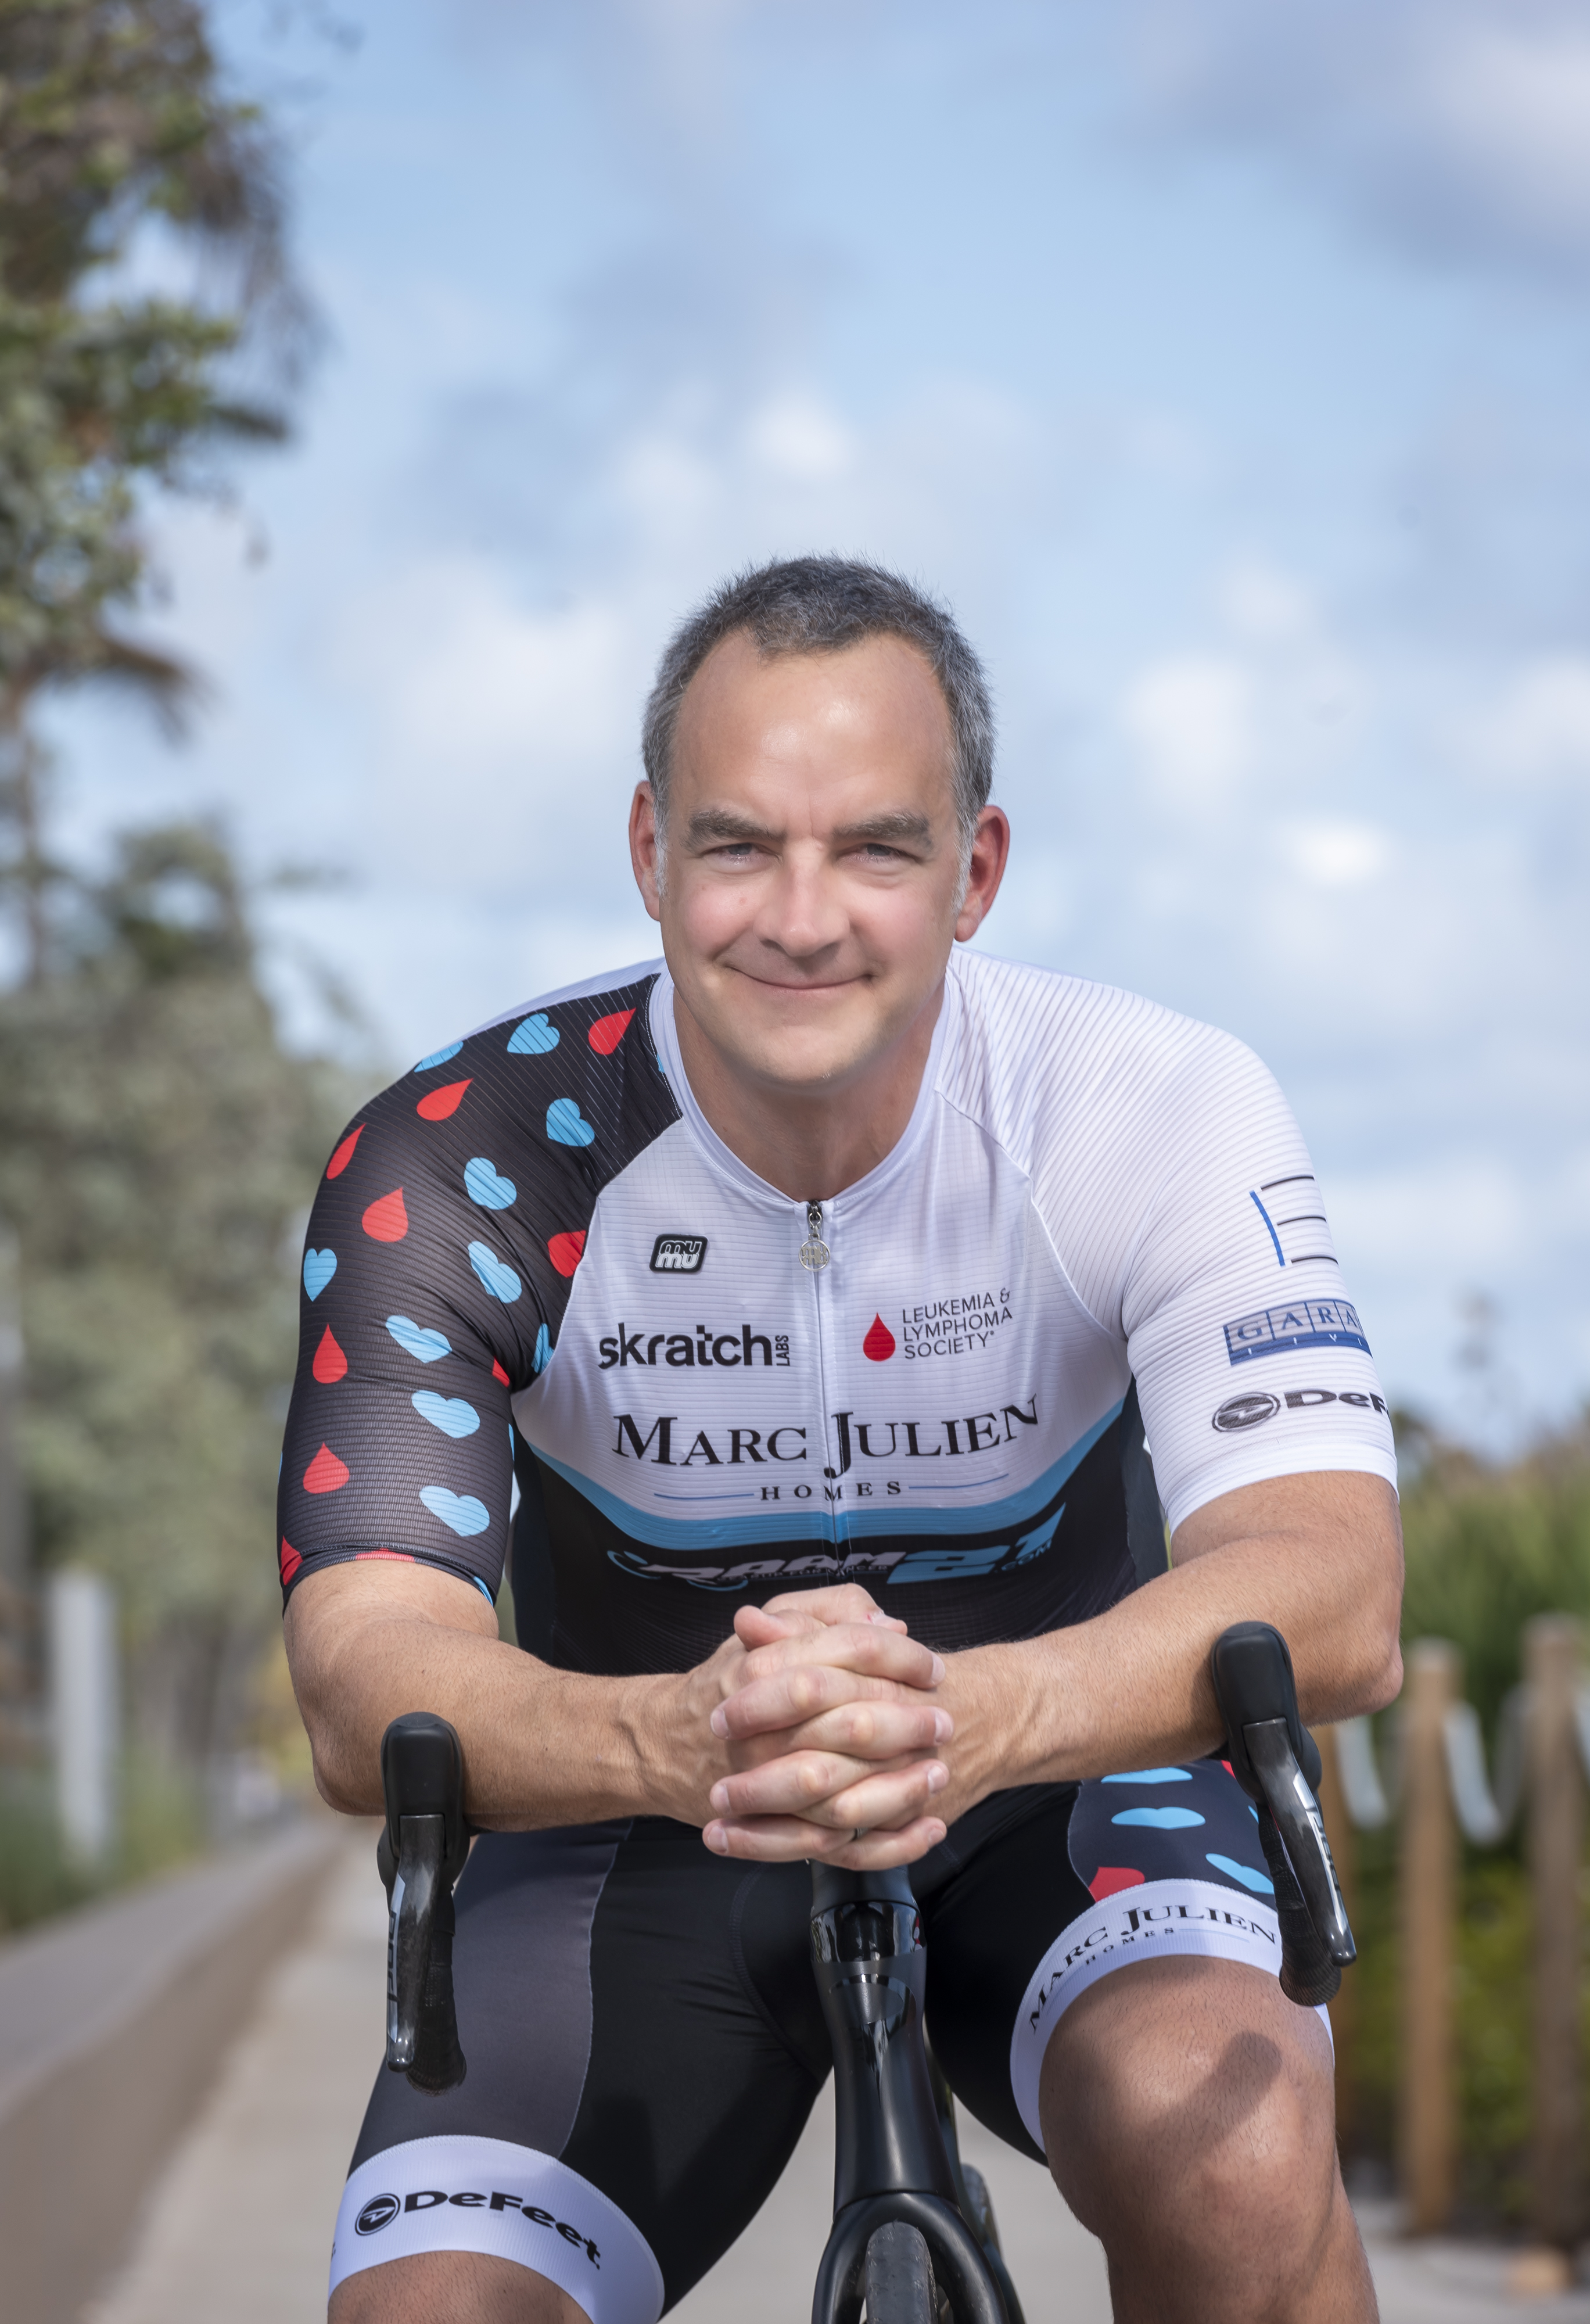 Marc Julien, CEO, Marc Julien Homes, is a cancer survivor and participated in the Race Across America cycling race.